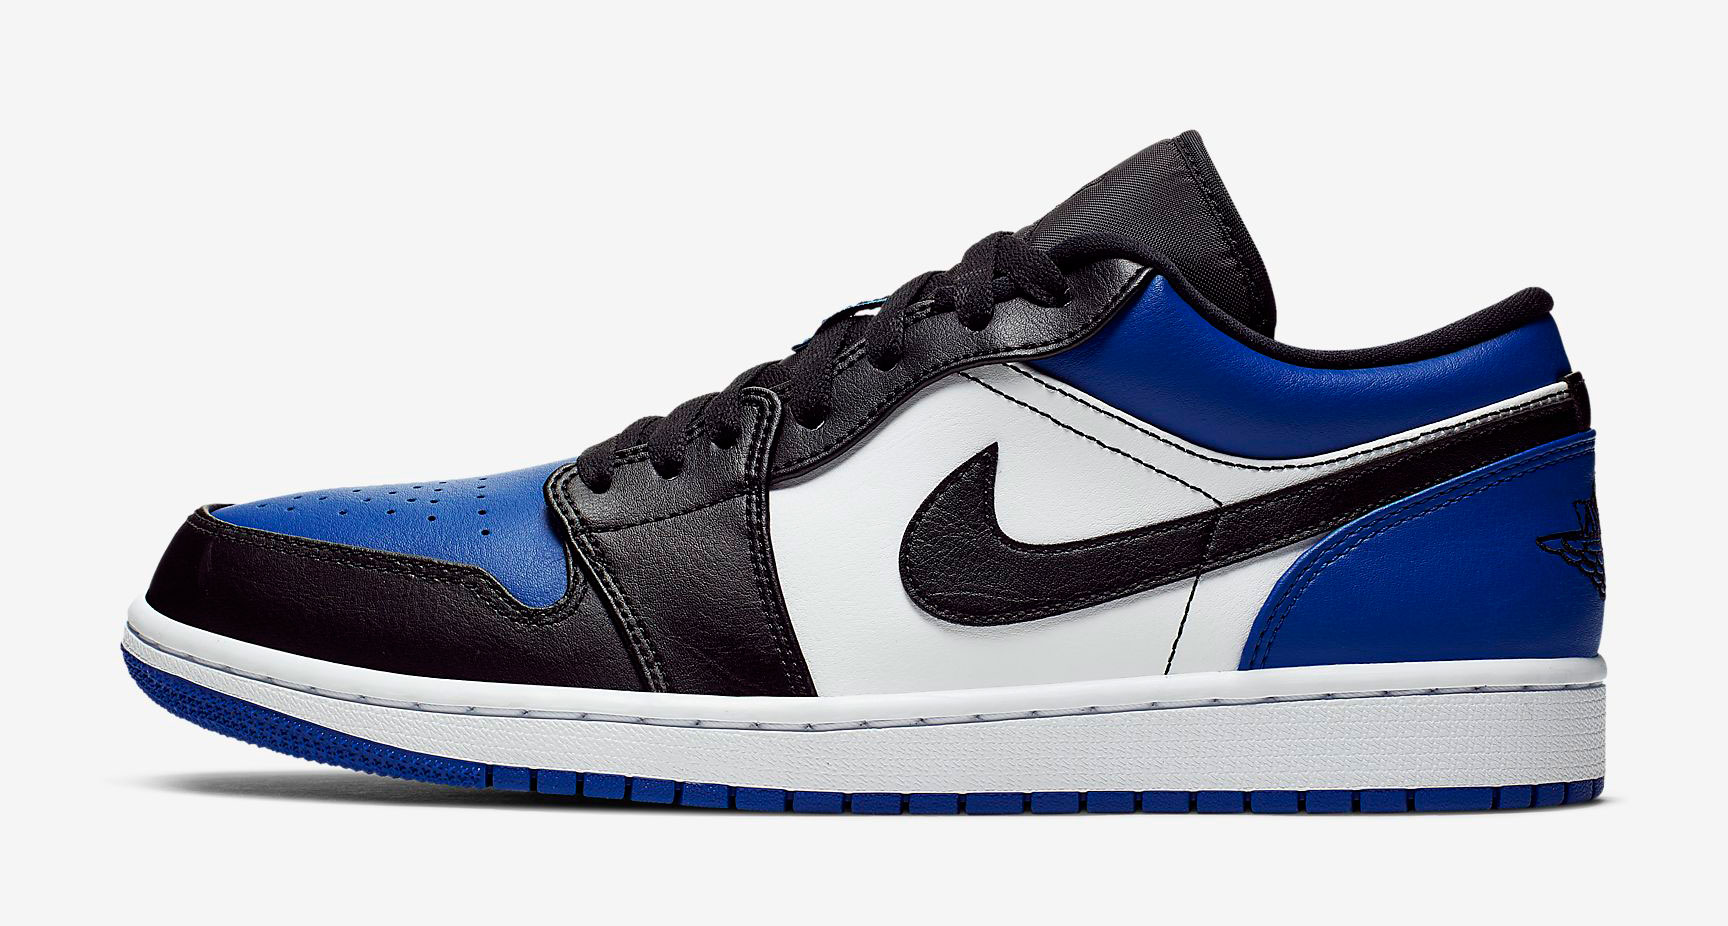 air-jordan-1-low-royal-toe-release-date